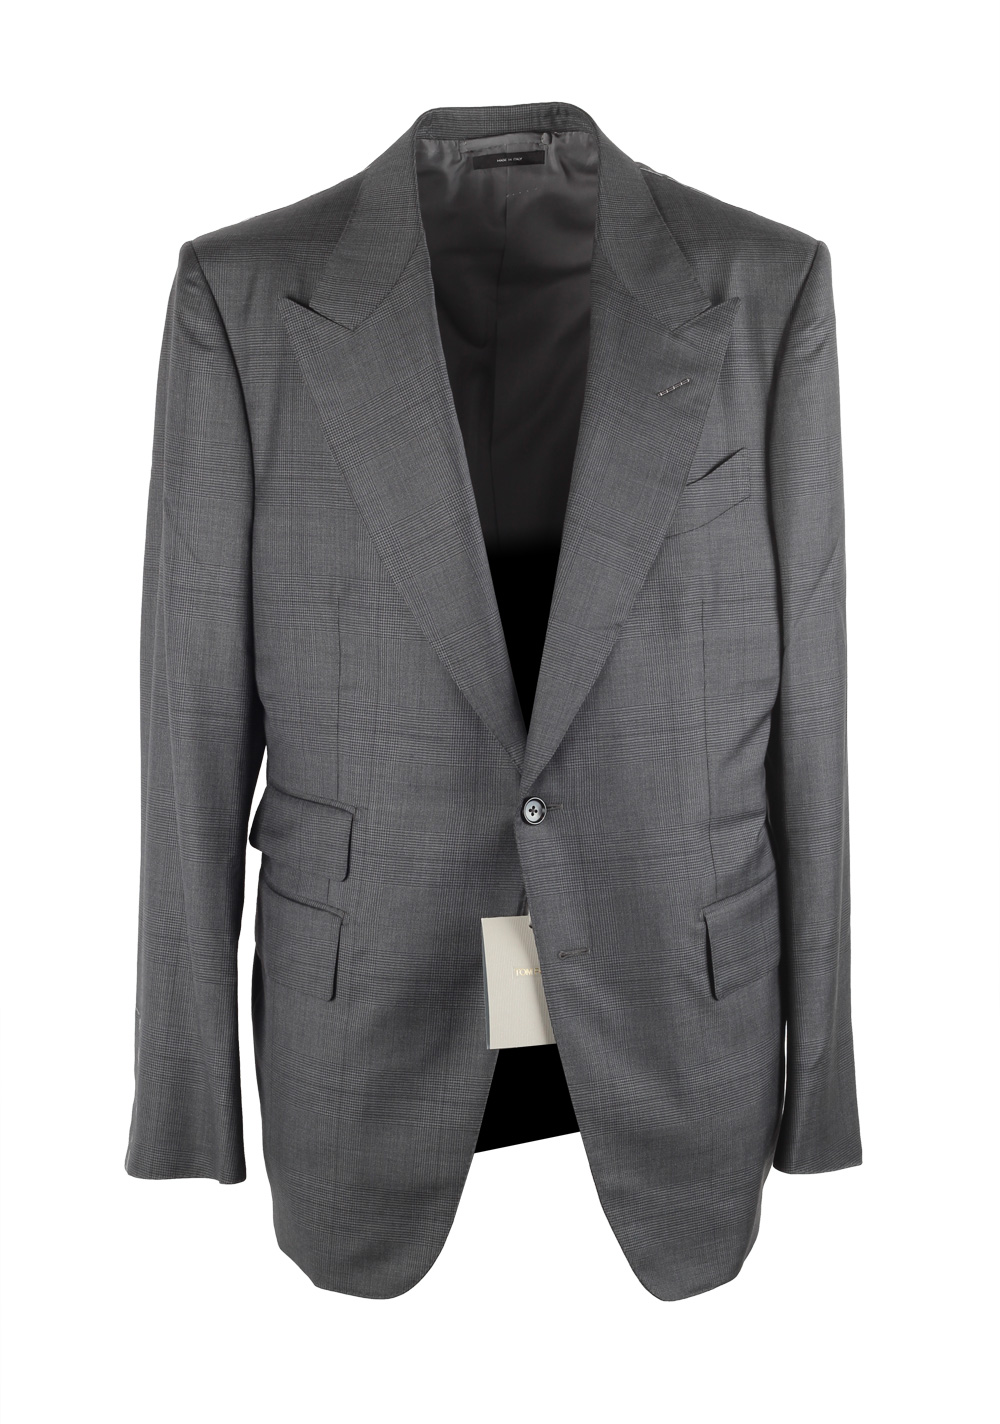 TOM FORD Shelton Checked Gray Suit Size 52 / 42R U.S. Wool Silk | Costume Limité